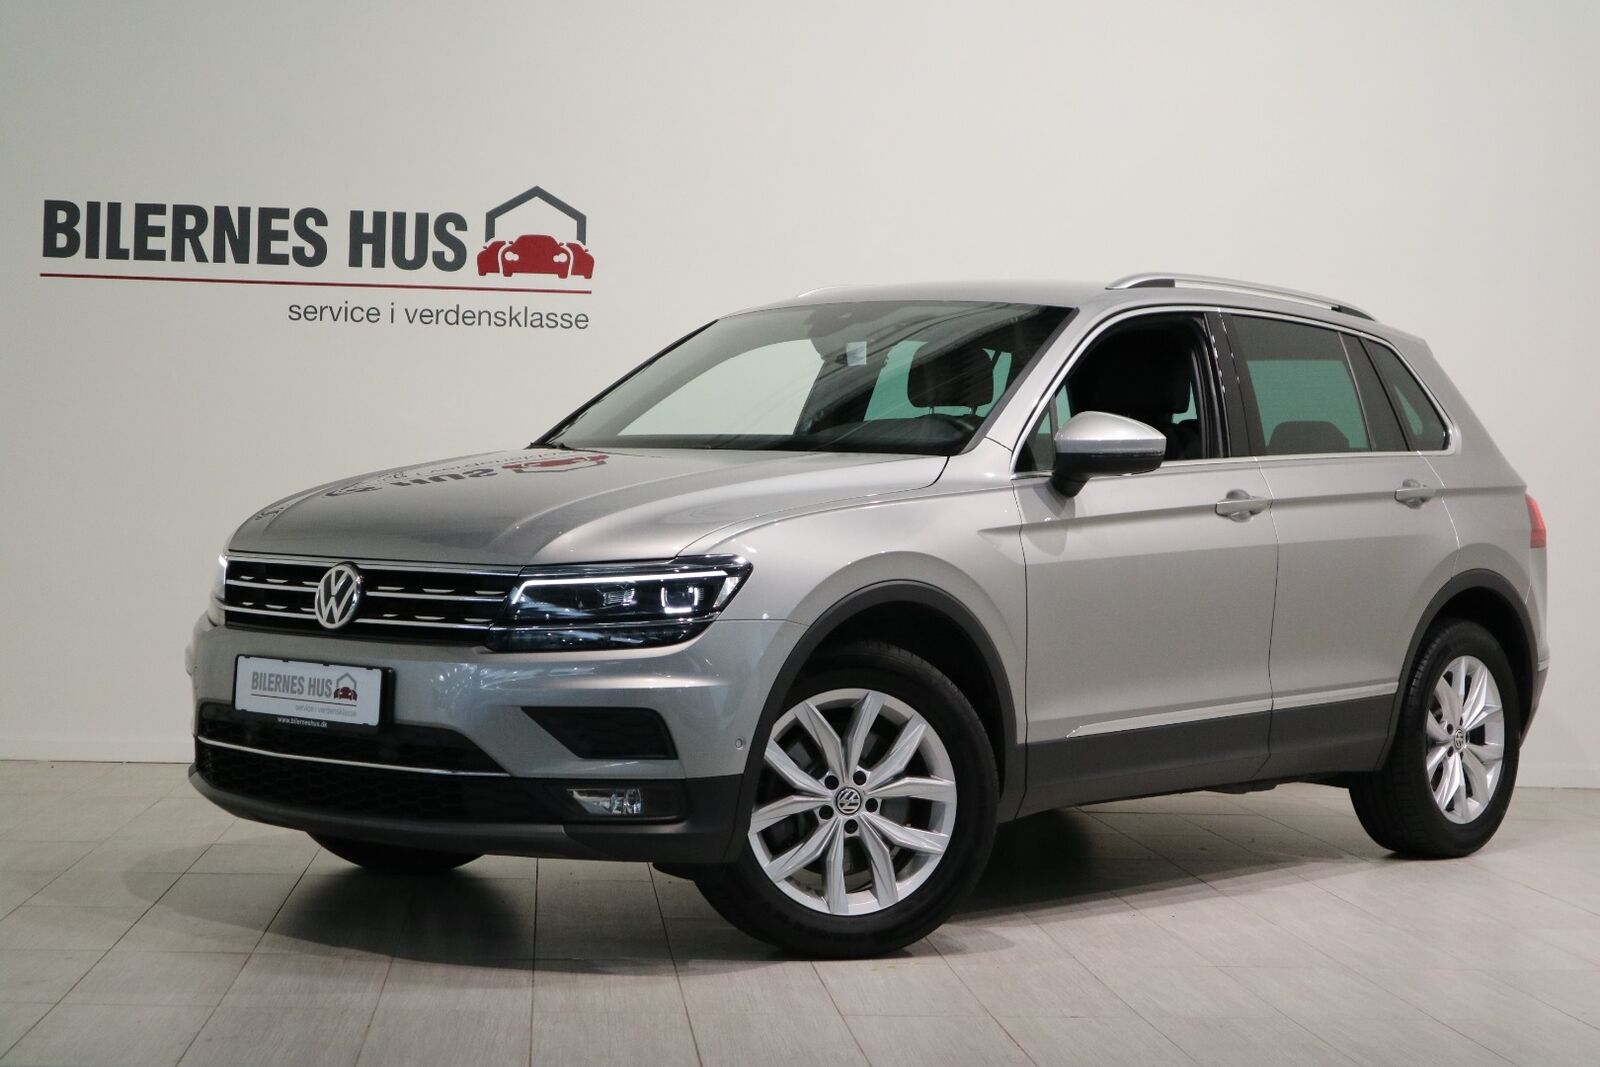 VW Tiguan 2,0 TDi 240 Highline DSG 4M